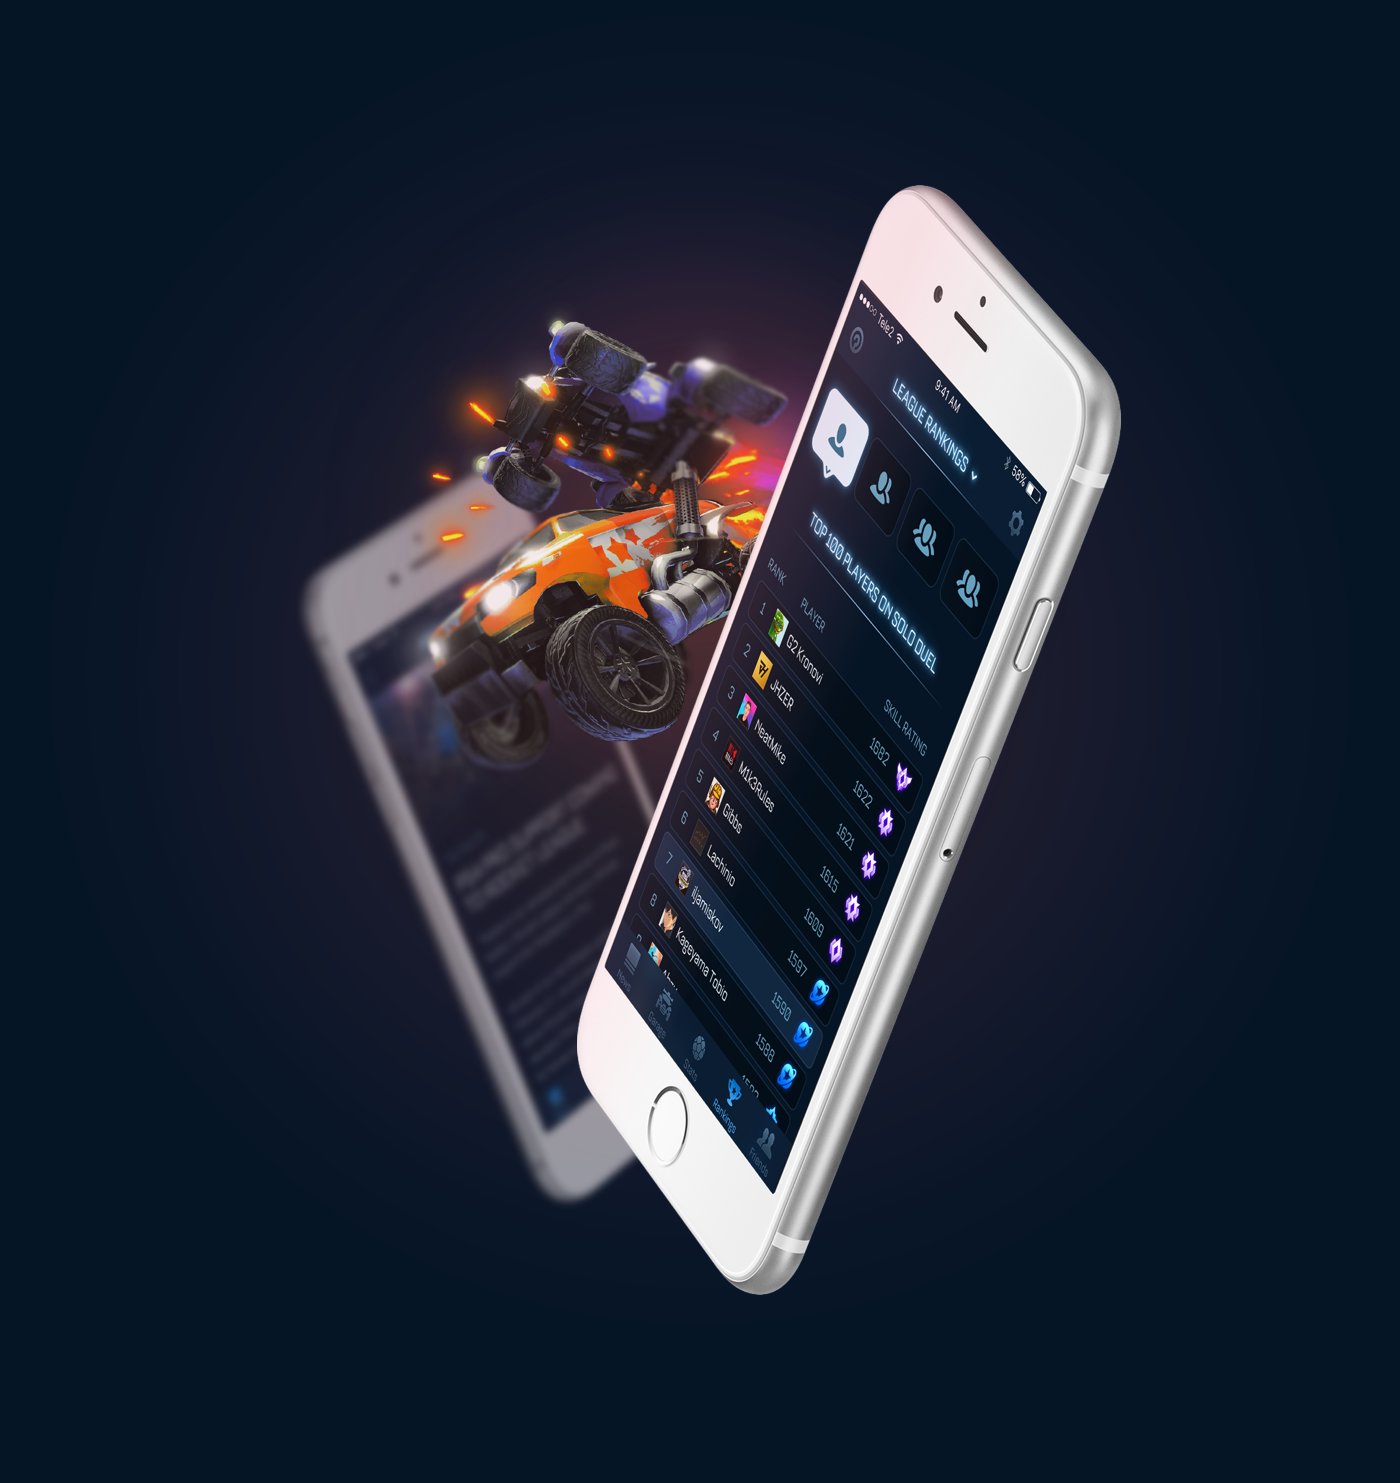 This Is A Rocket League Companion App Concept It Allows You To See The Latest News About The Game Receive Notific Customize Your Car Rocket League Custom Cars